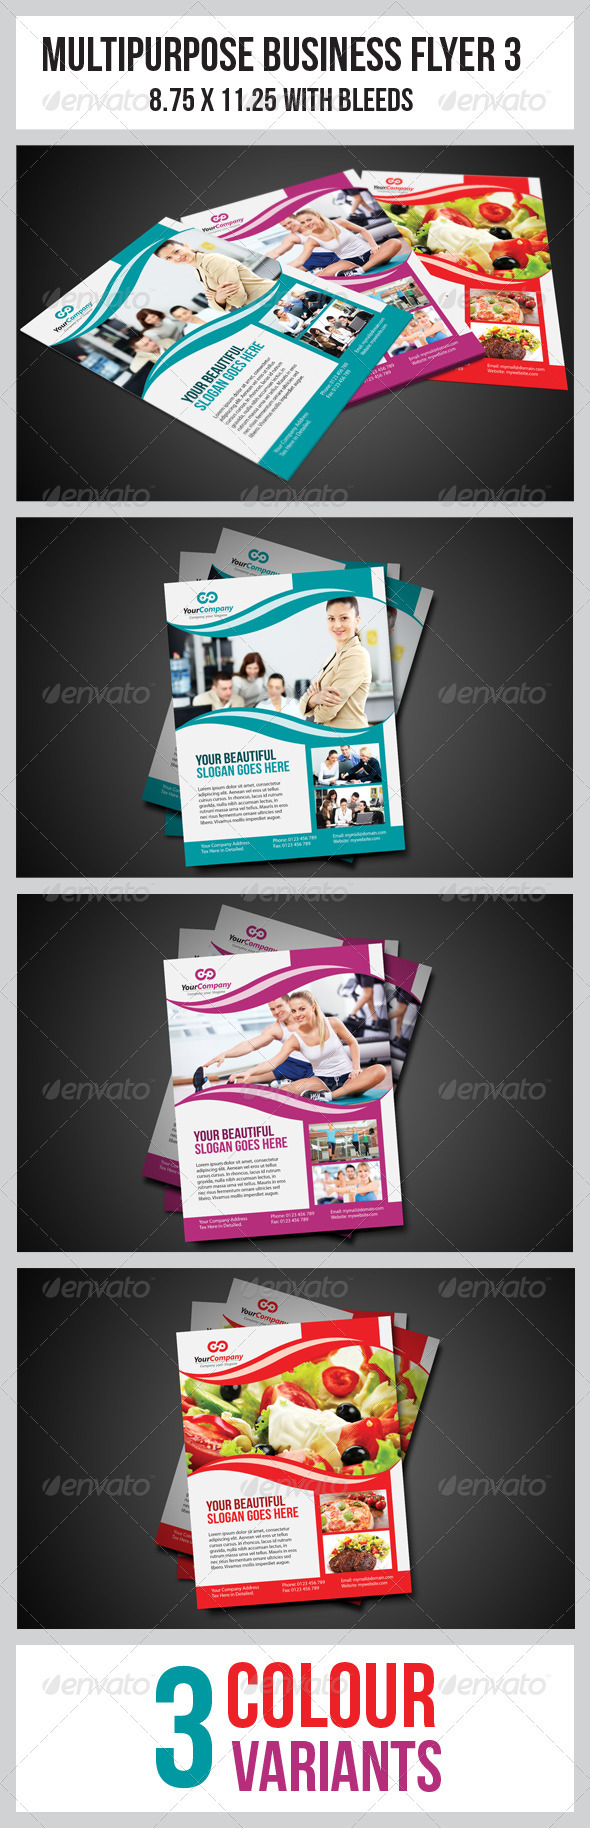 GraphicRiver Multipurpose Business Flyer 3 3377485